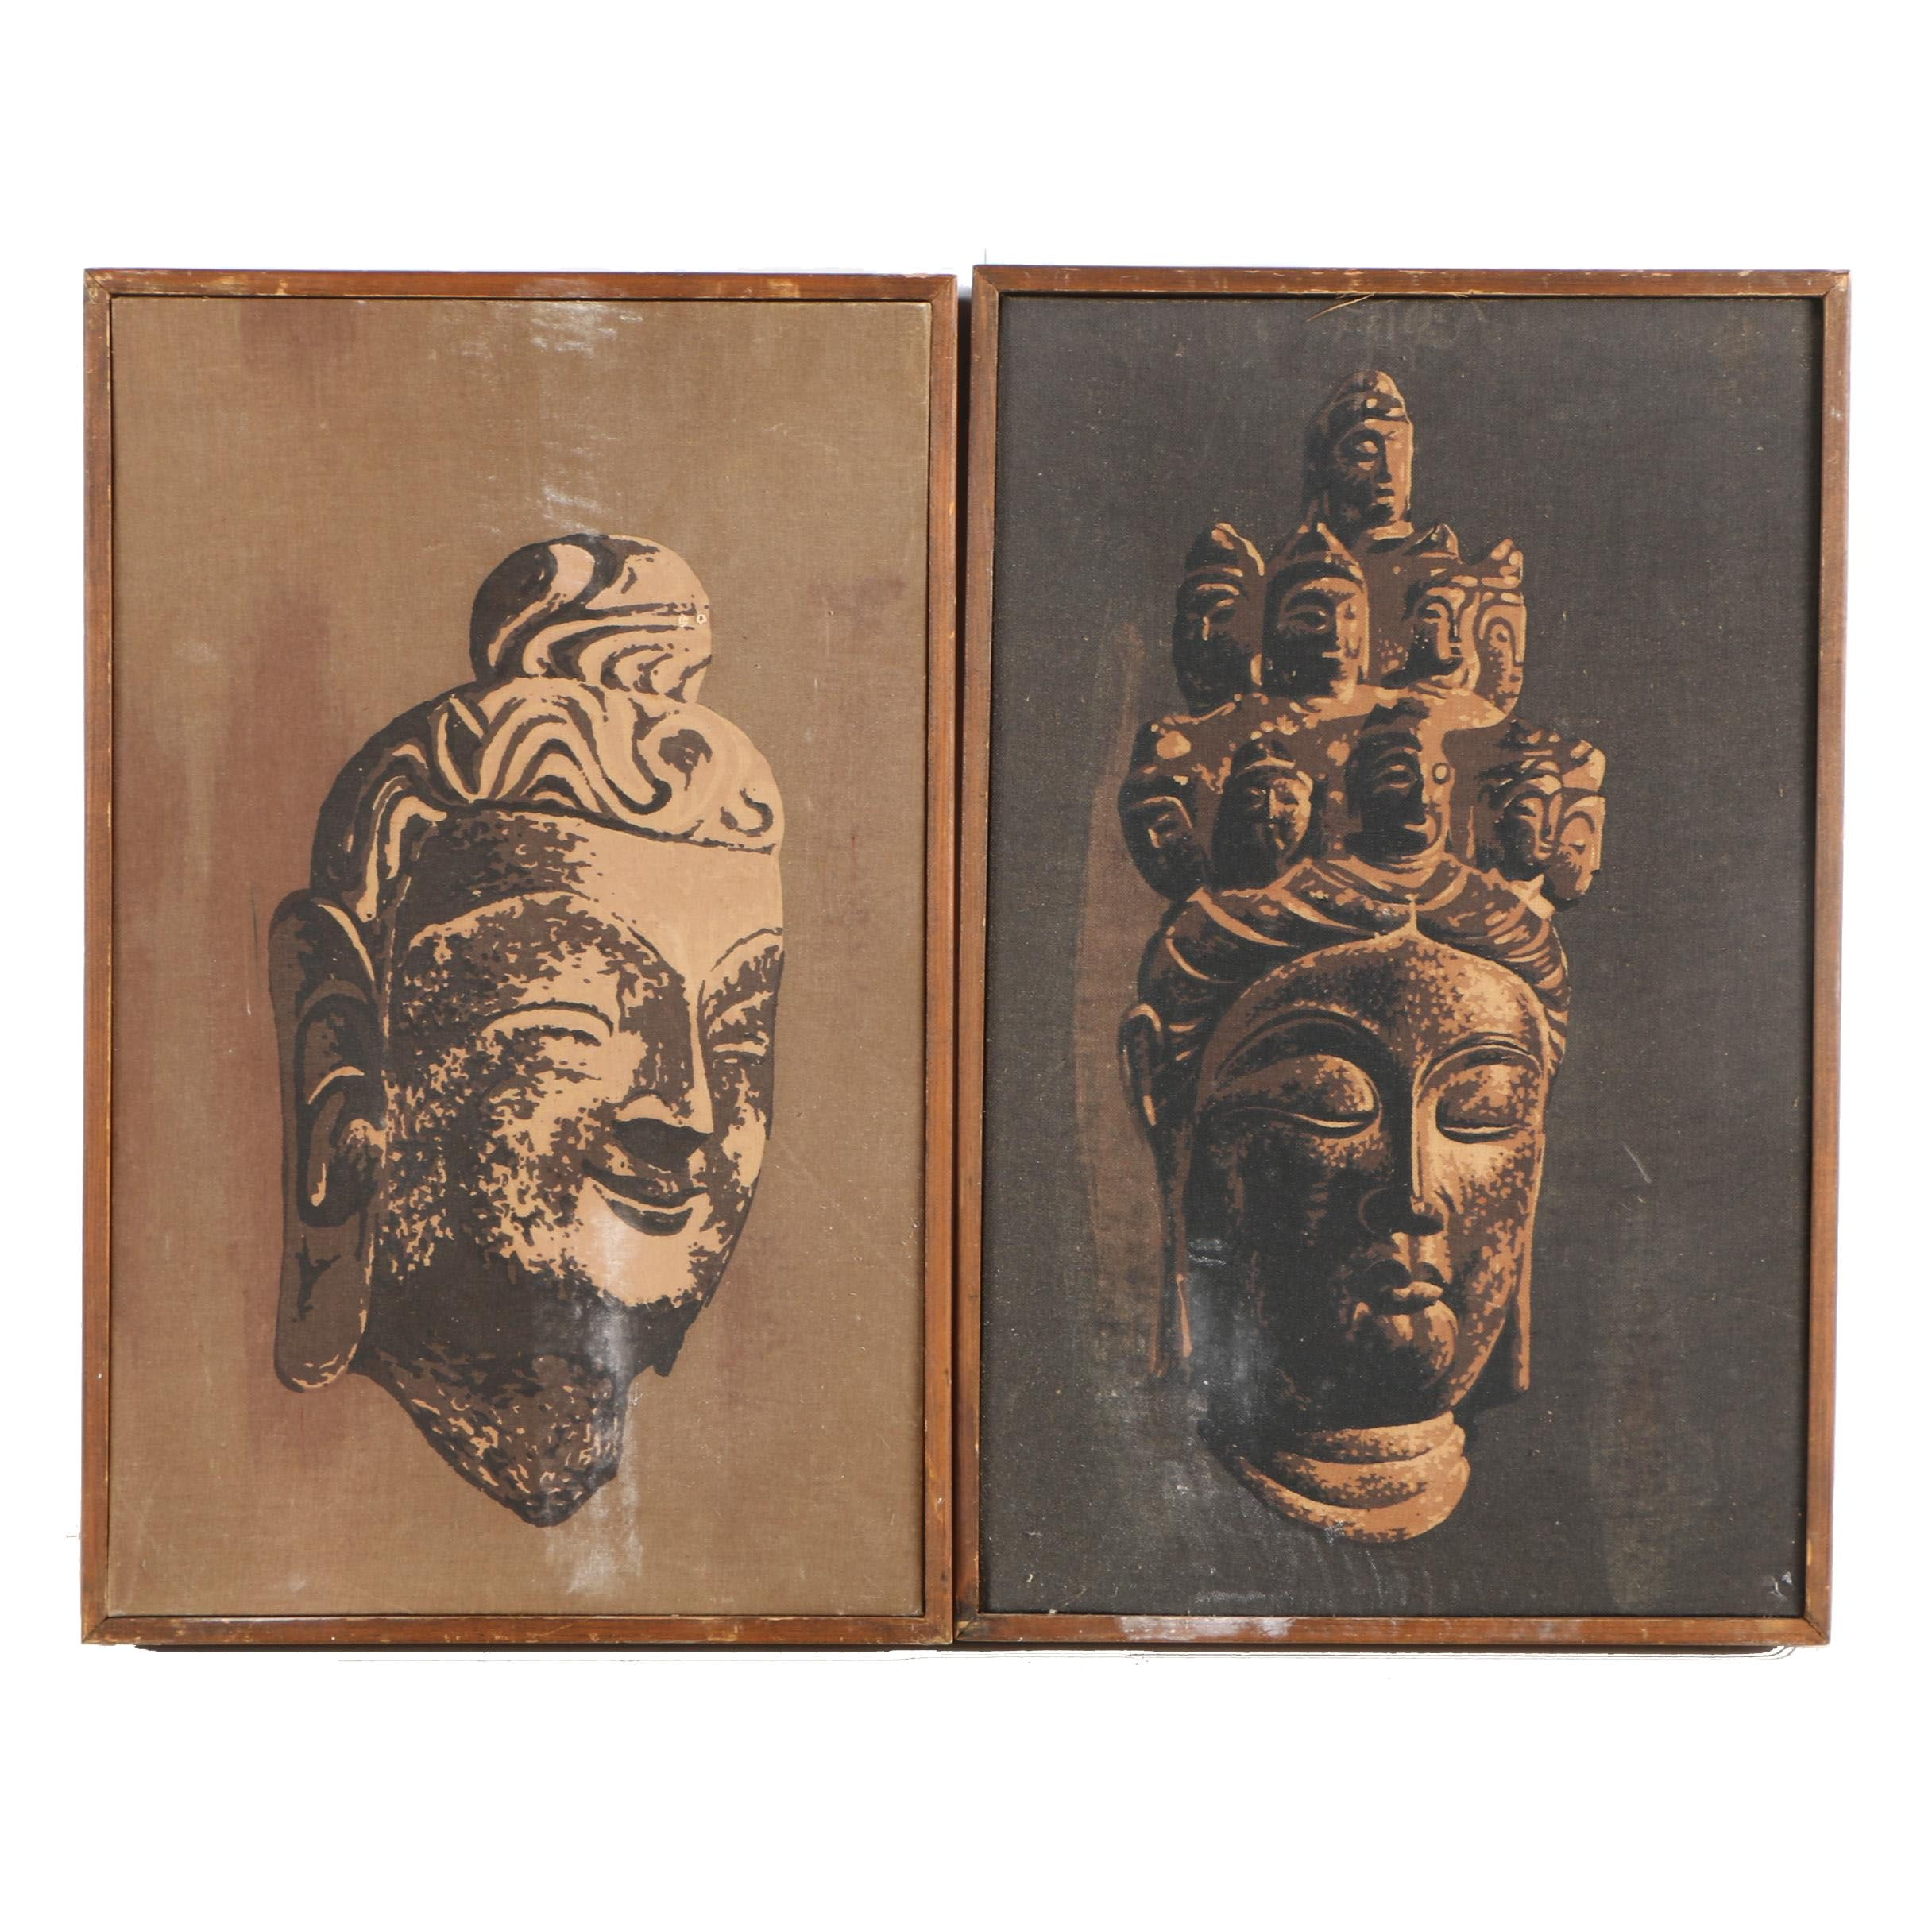 Serigraph Prints on Canvas of Buddhist Sculptures